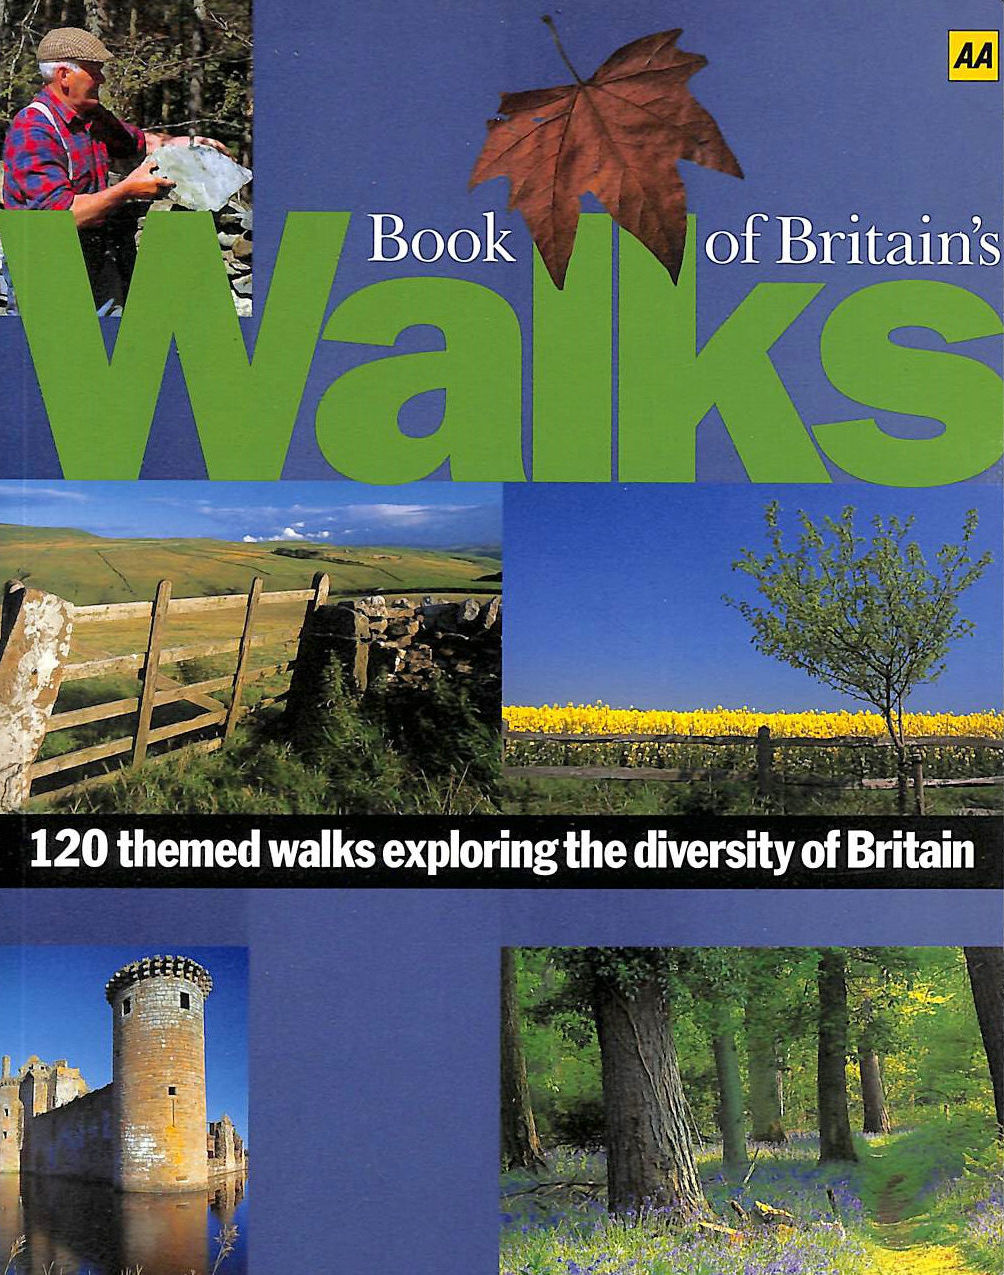 Image for AA Book of Britain's Walks